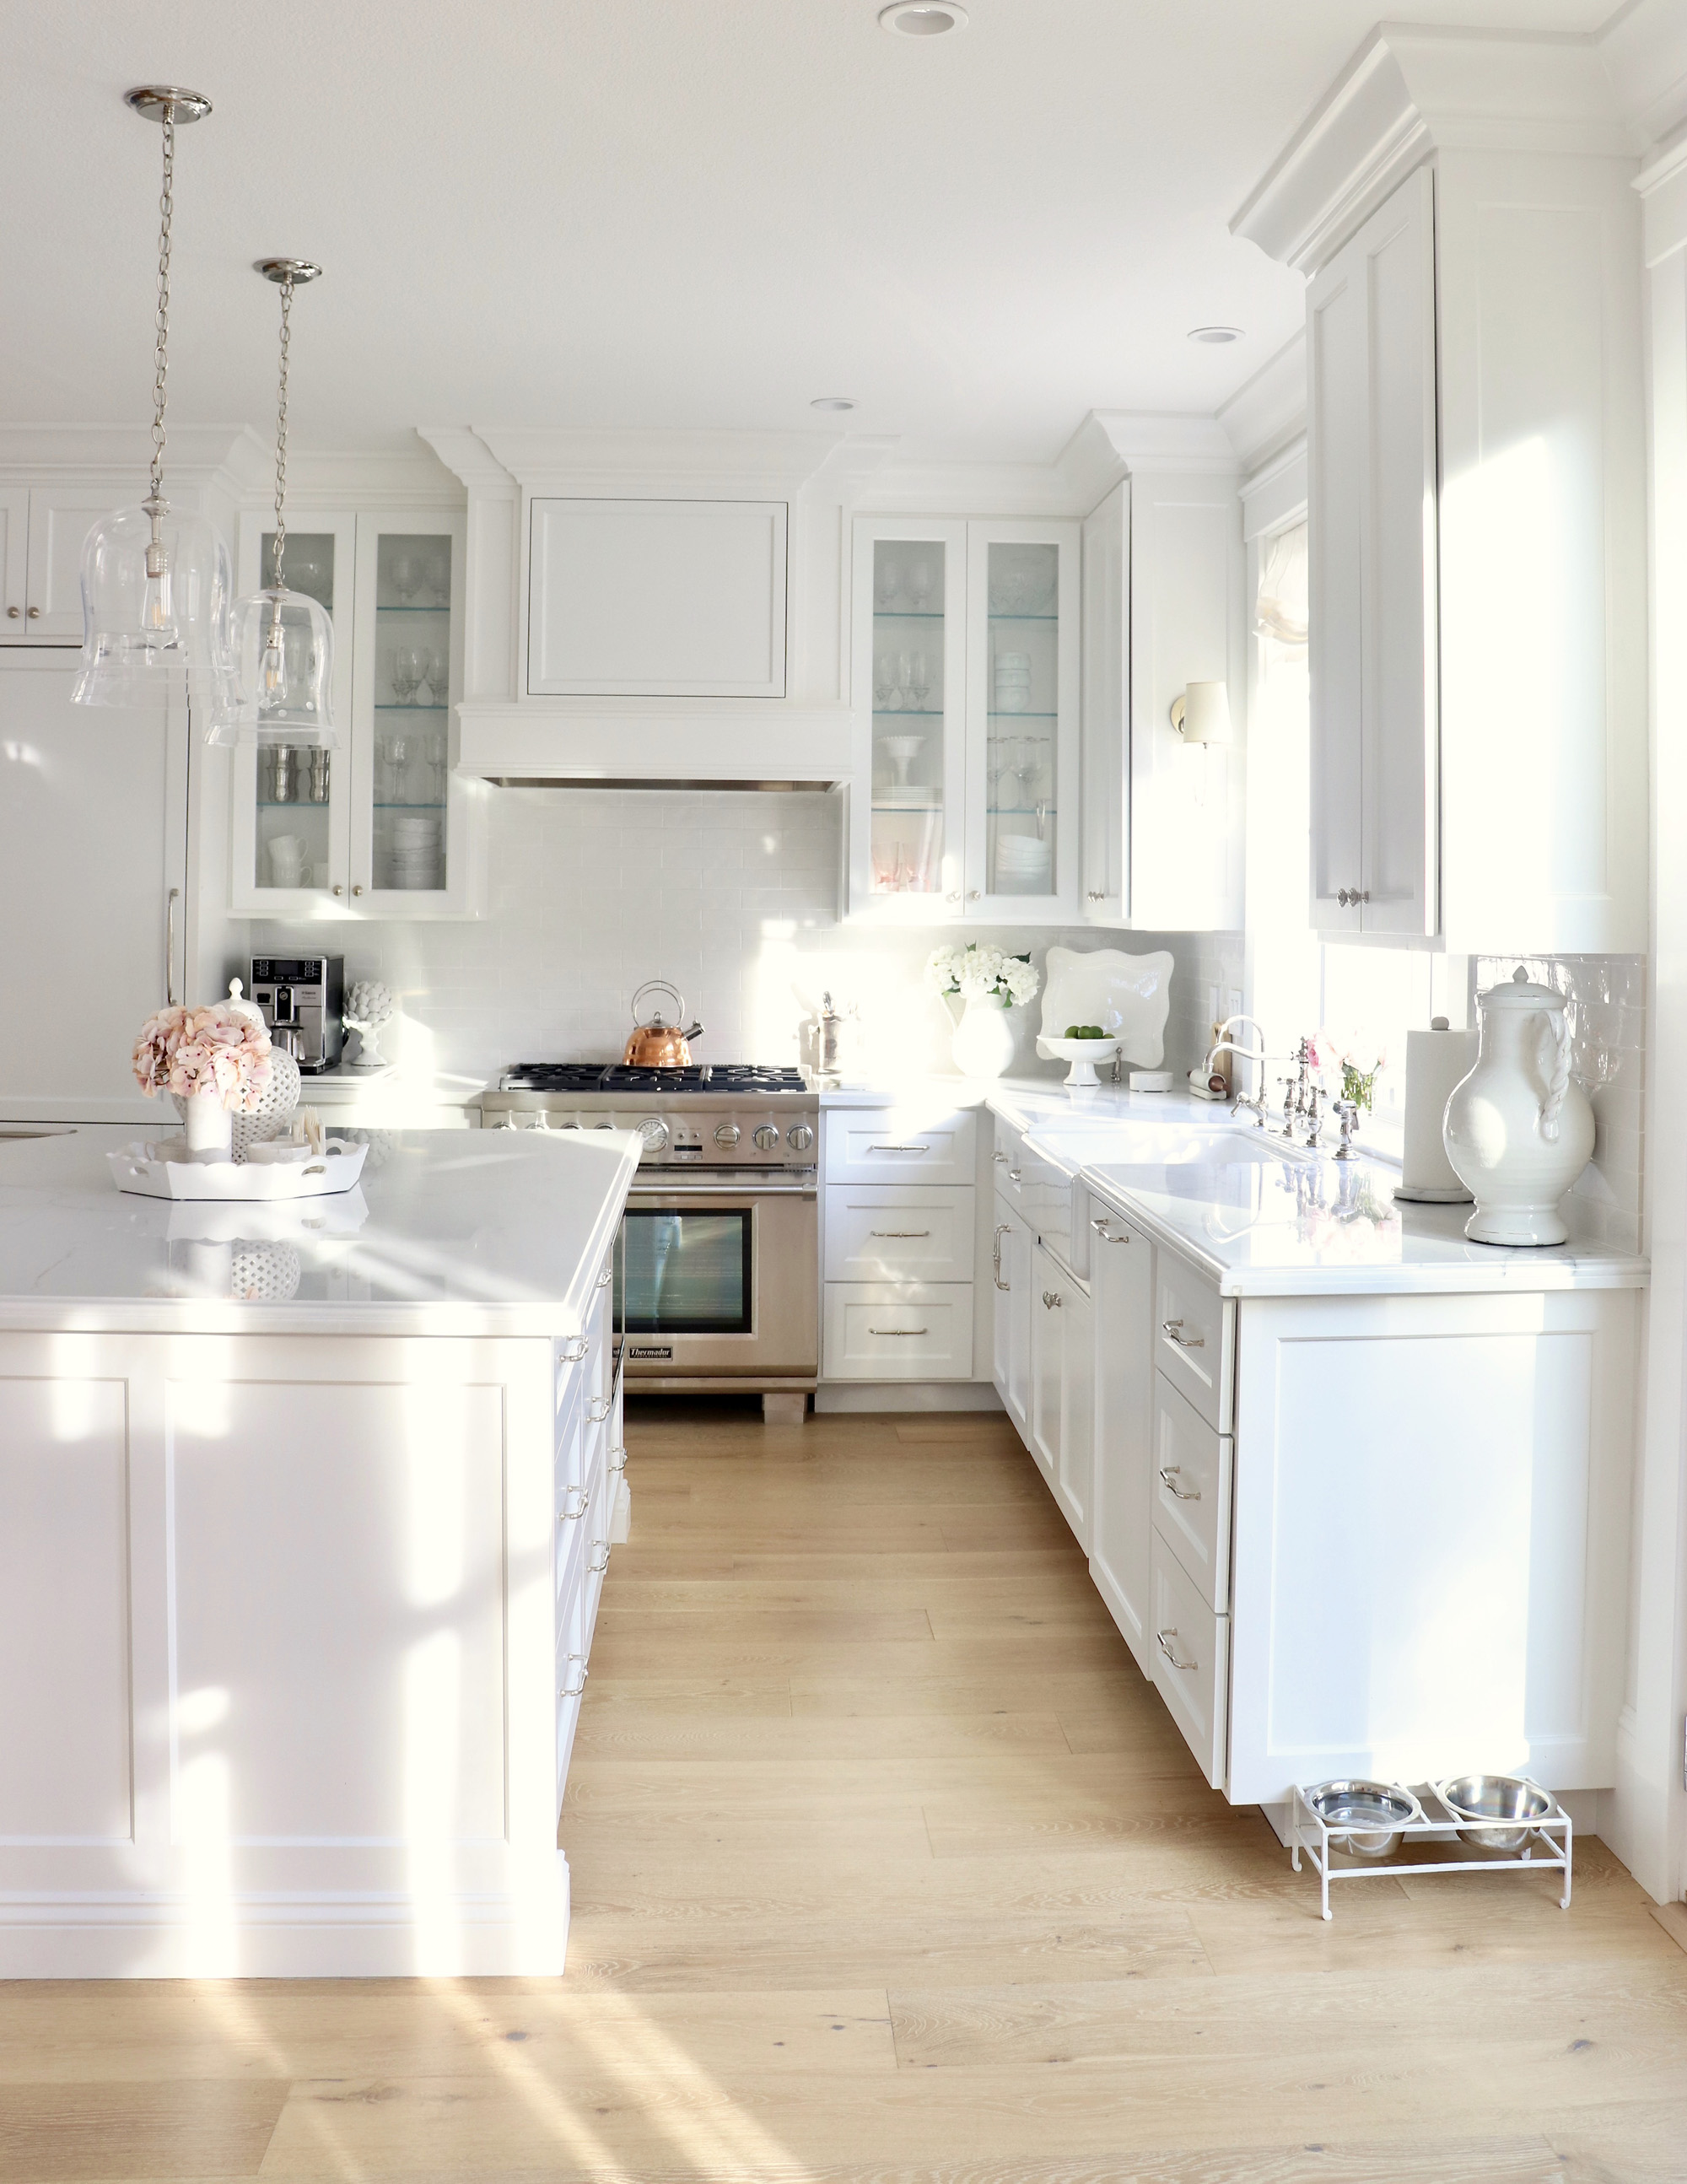 Kitchen Q+A with Sources, Details, & Links